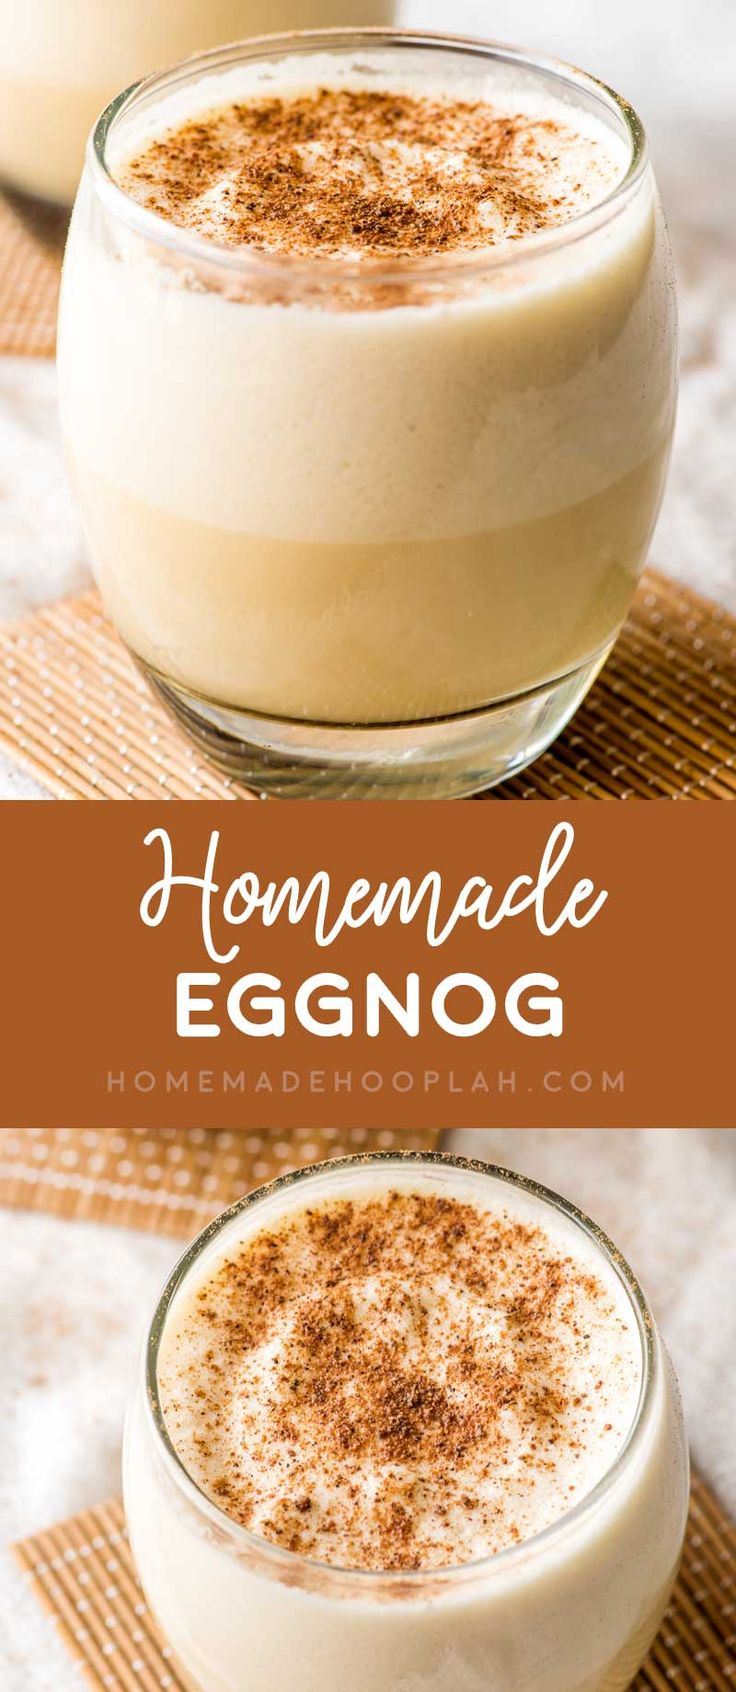 Homemade Eggnog! Classic eggnog made with egg yolks, cream, milk, a heavy pour of rum, and thickened with whipped egg whites. Serve it chilled with a dash of nutmeg on top. | HomemadeHooplah.com